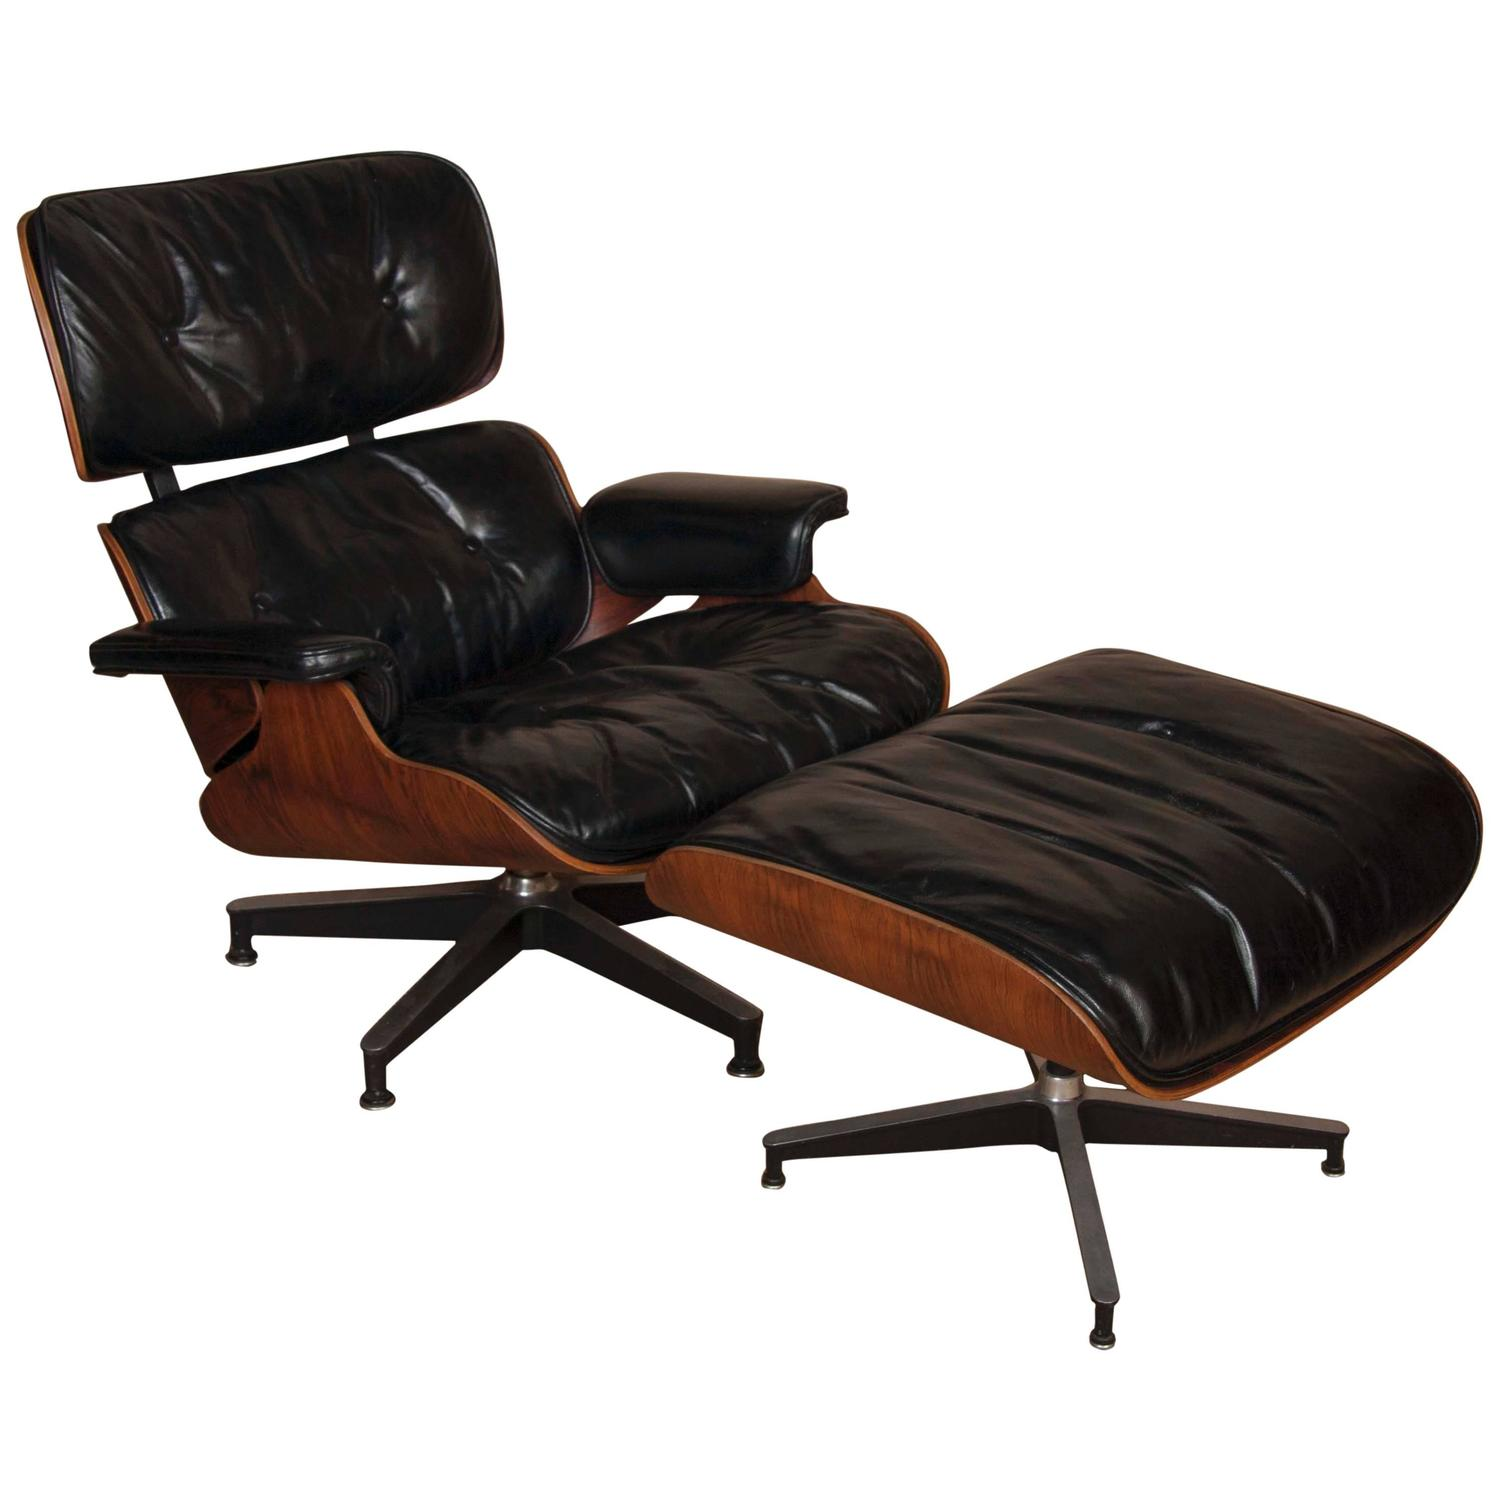 Charles and ray eames lounge chair and ottoman at 1stdibs for Charles eames lounge chair nachbildung